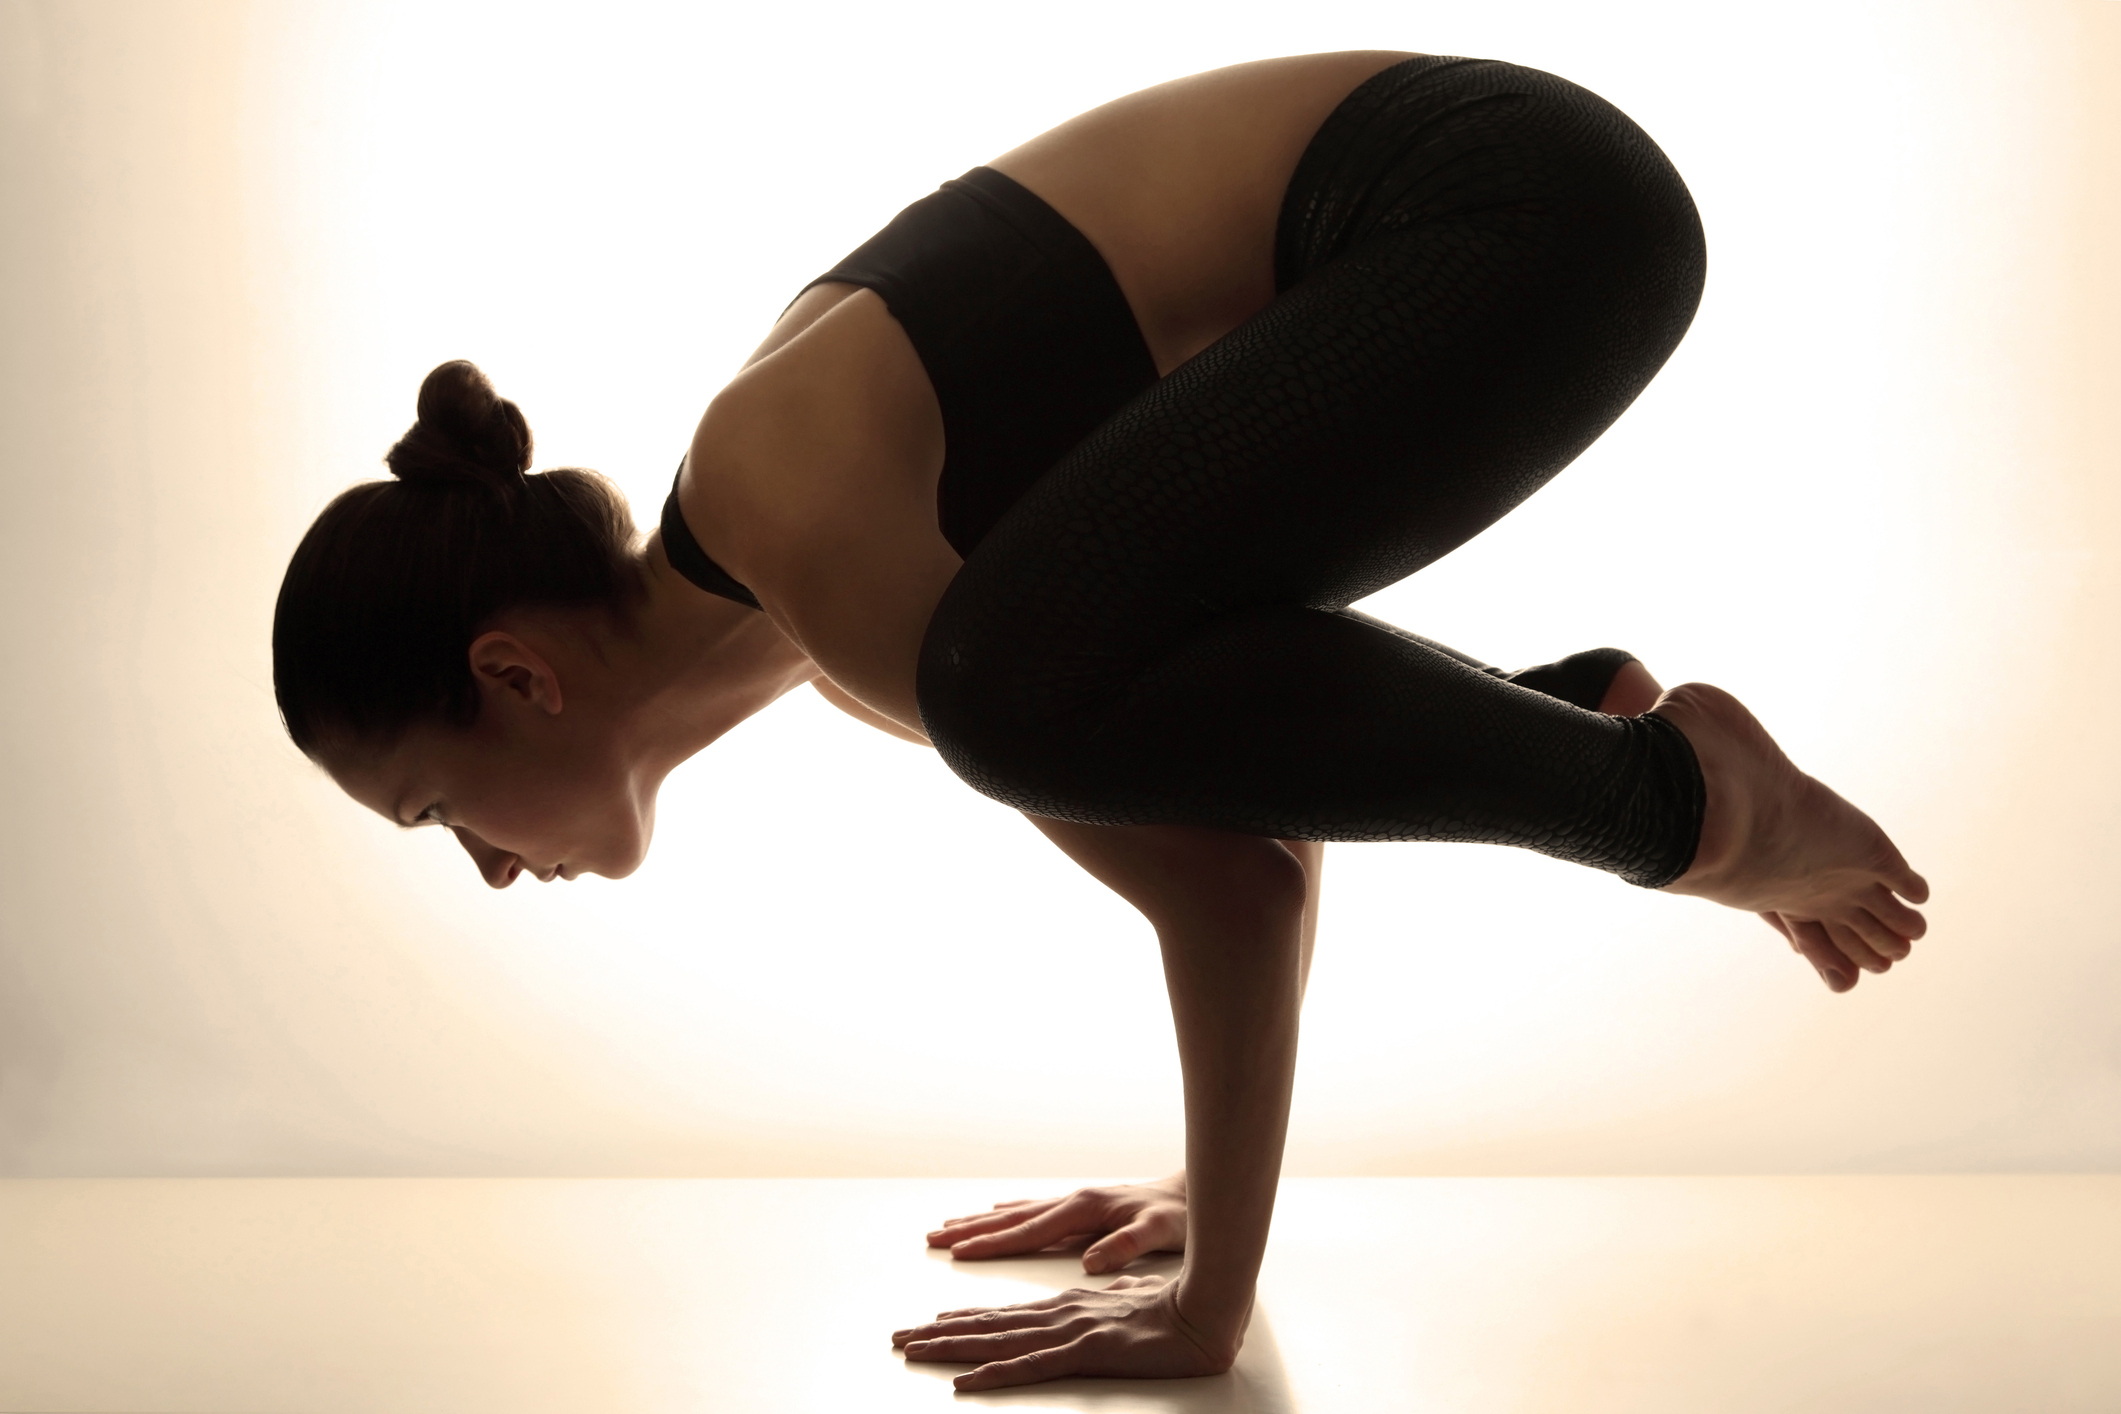 Yoga pose photo